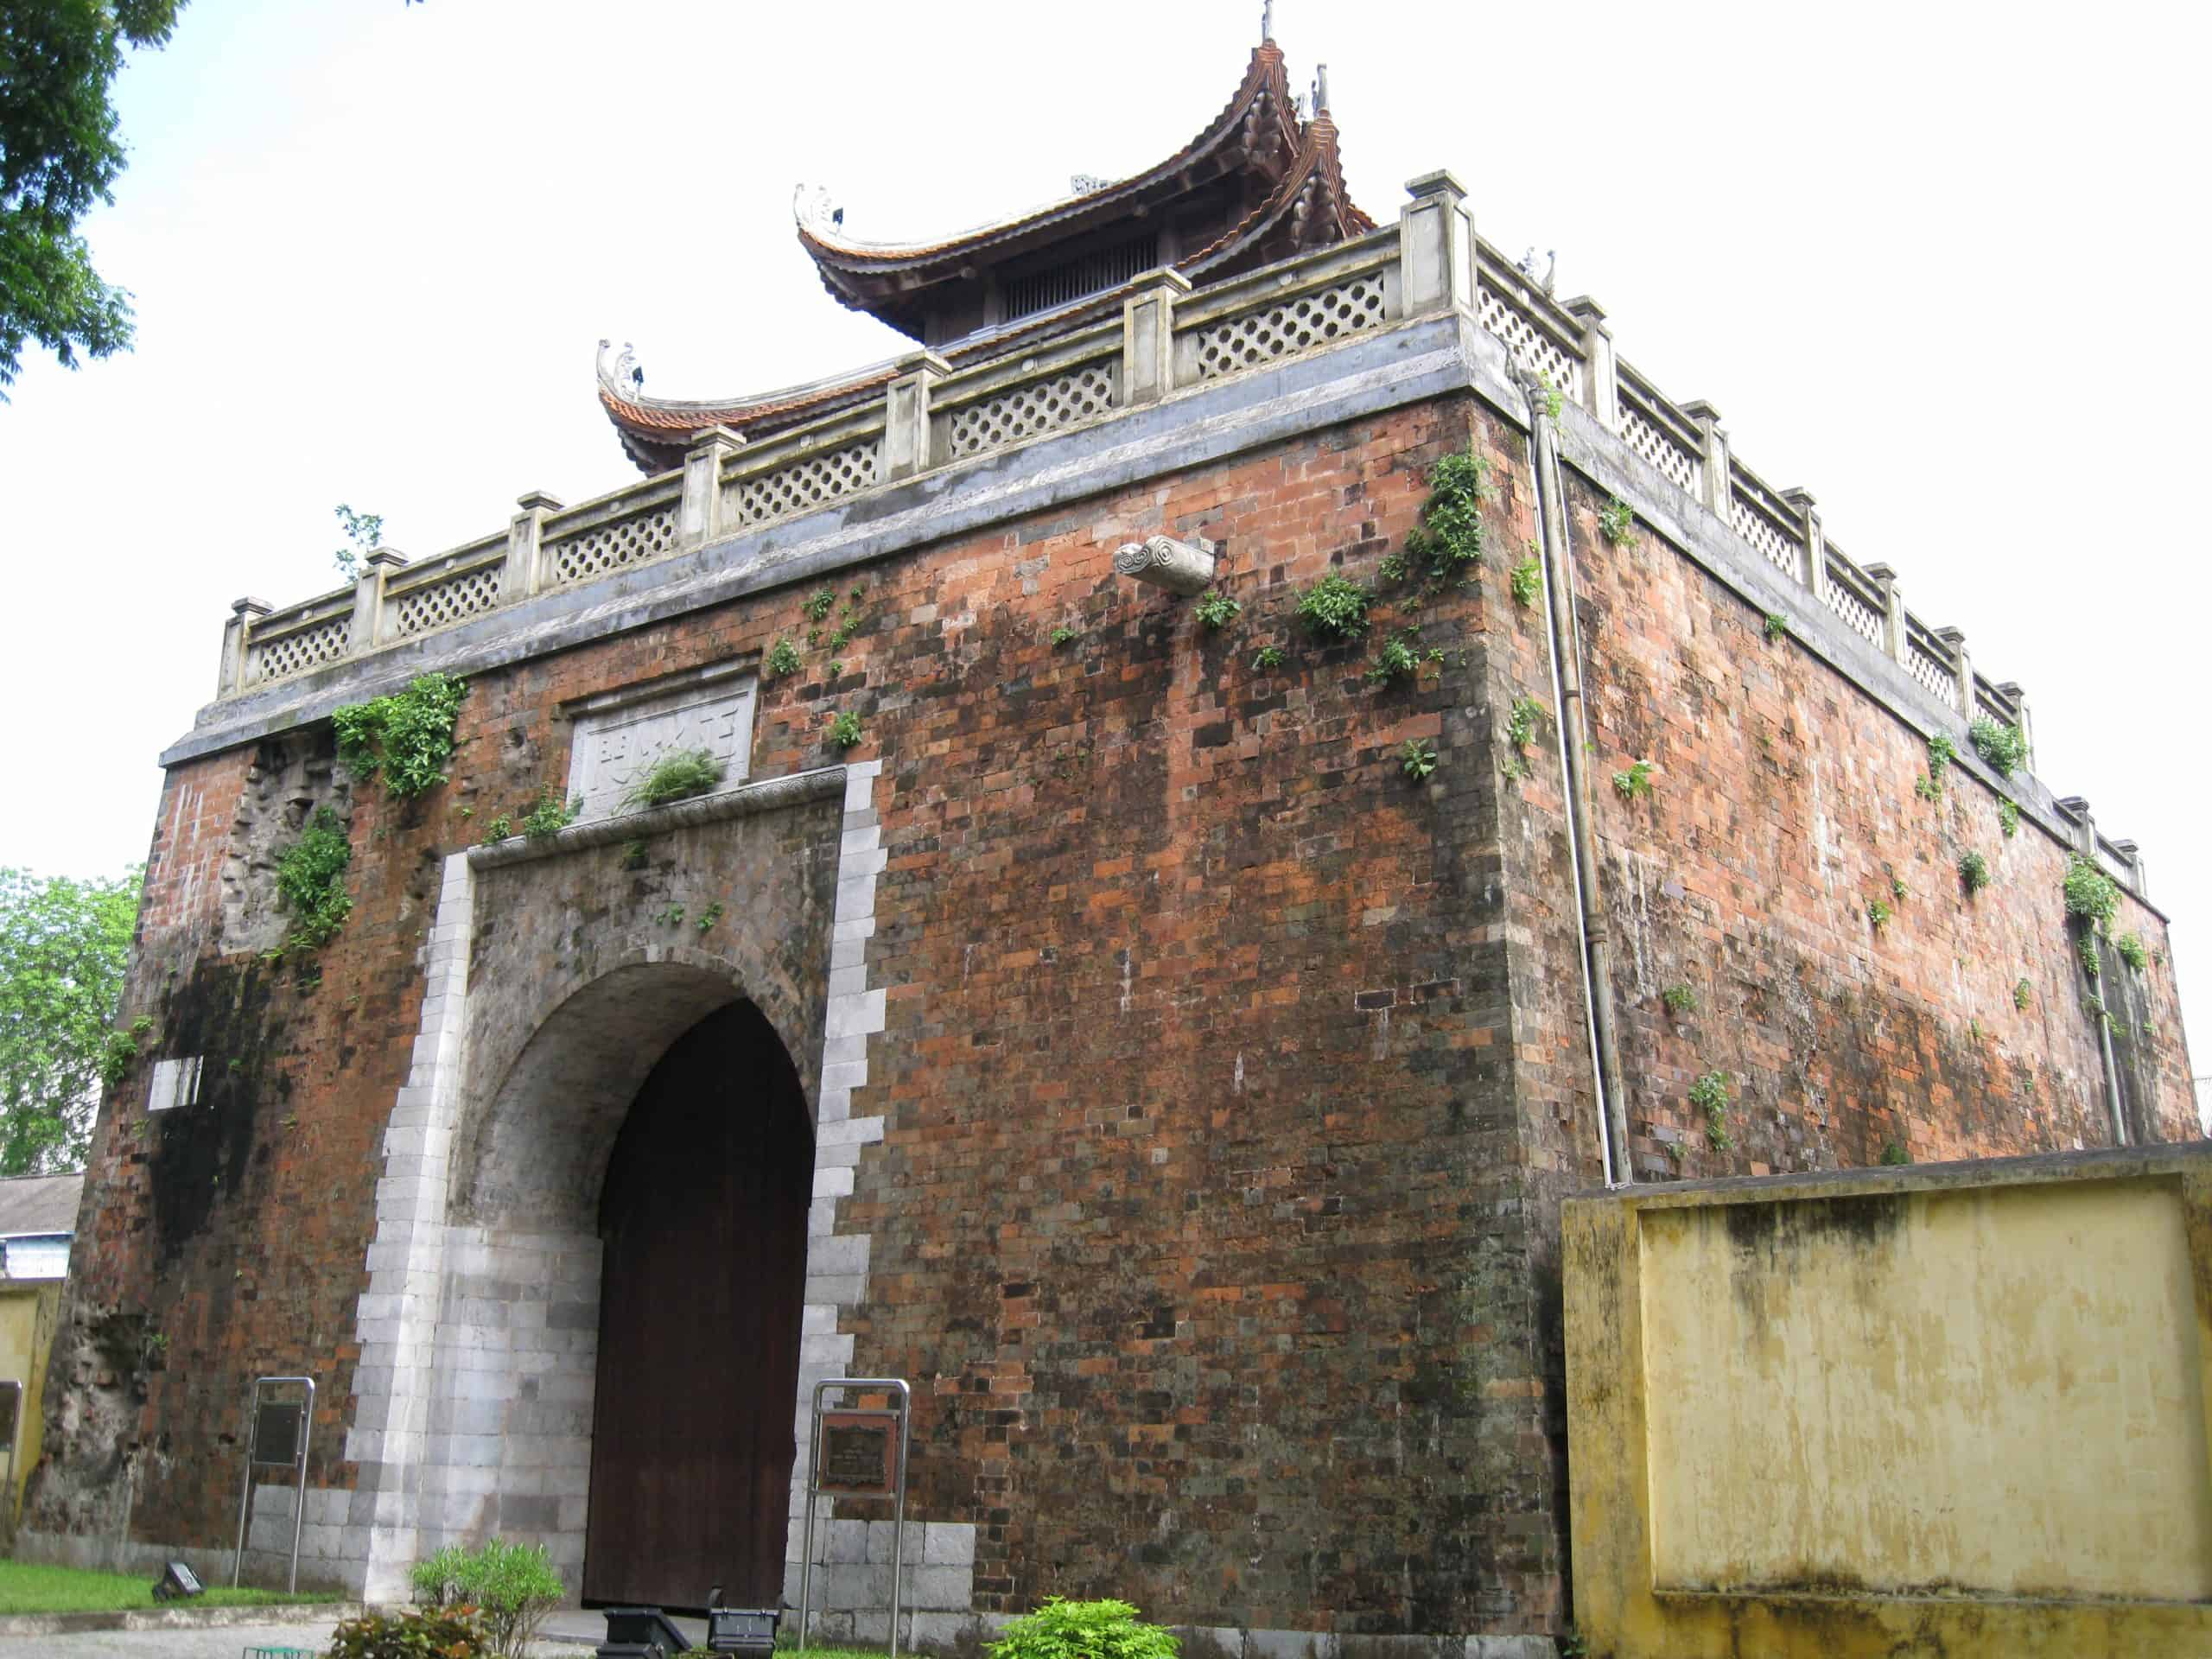 Bac Mon (North gate) of Imperial Citadel of Thang Long